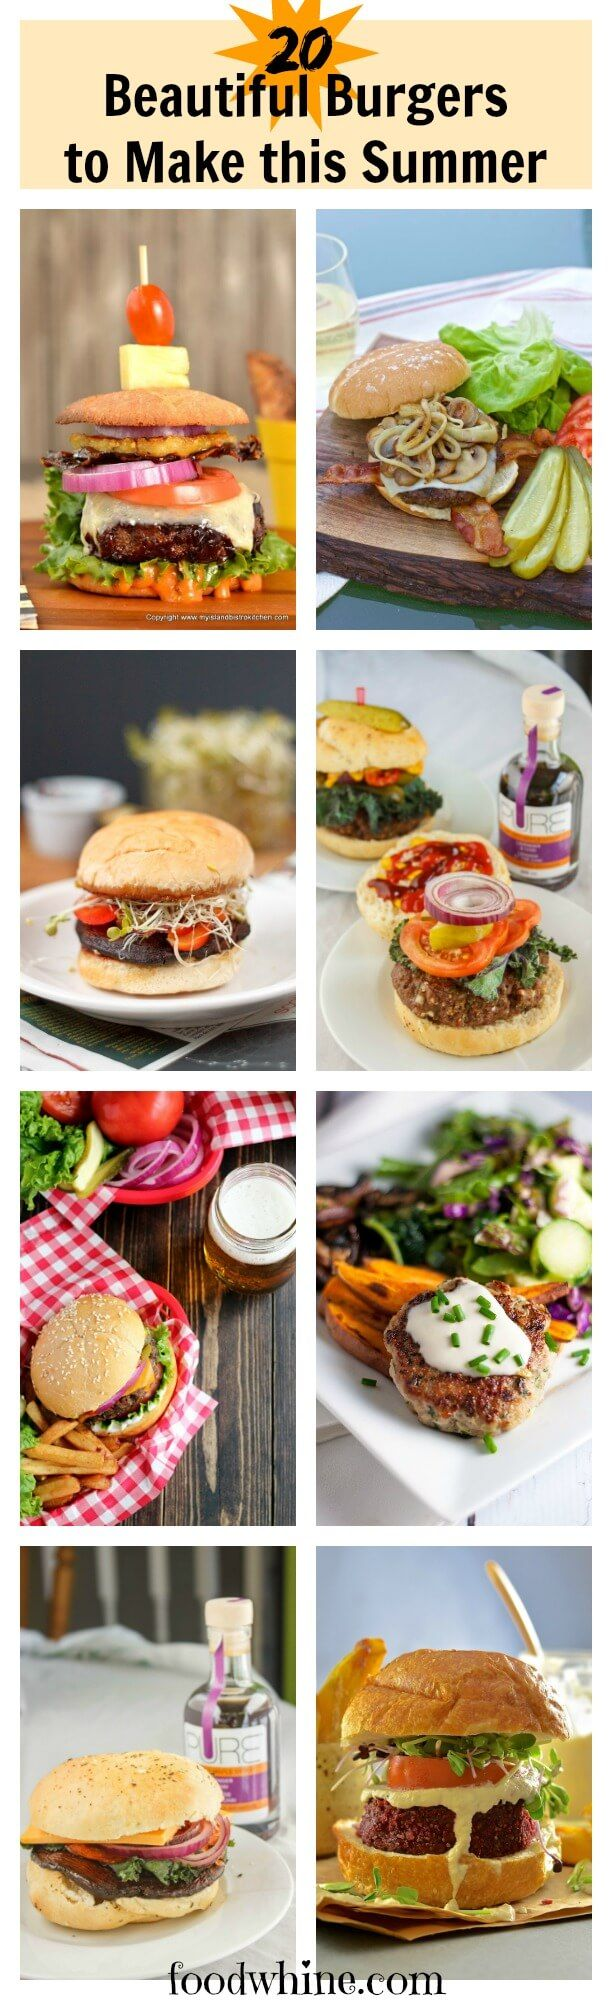 20 beautiful burgers you're going to want to make this summer. Includes a printable template for endless burger possibilities.